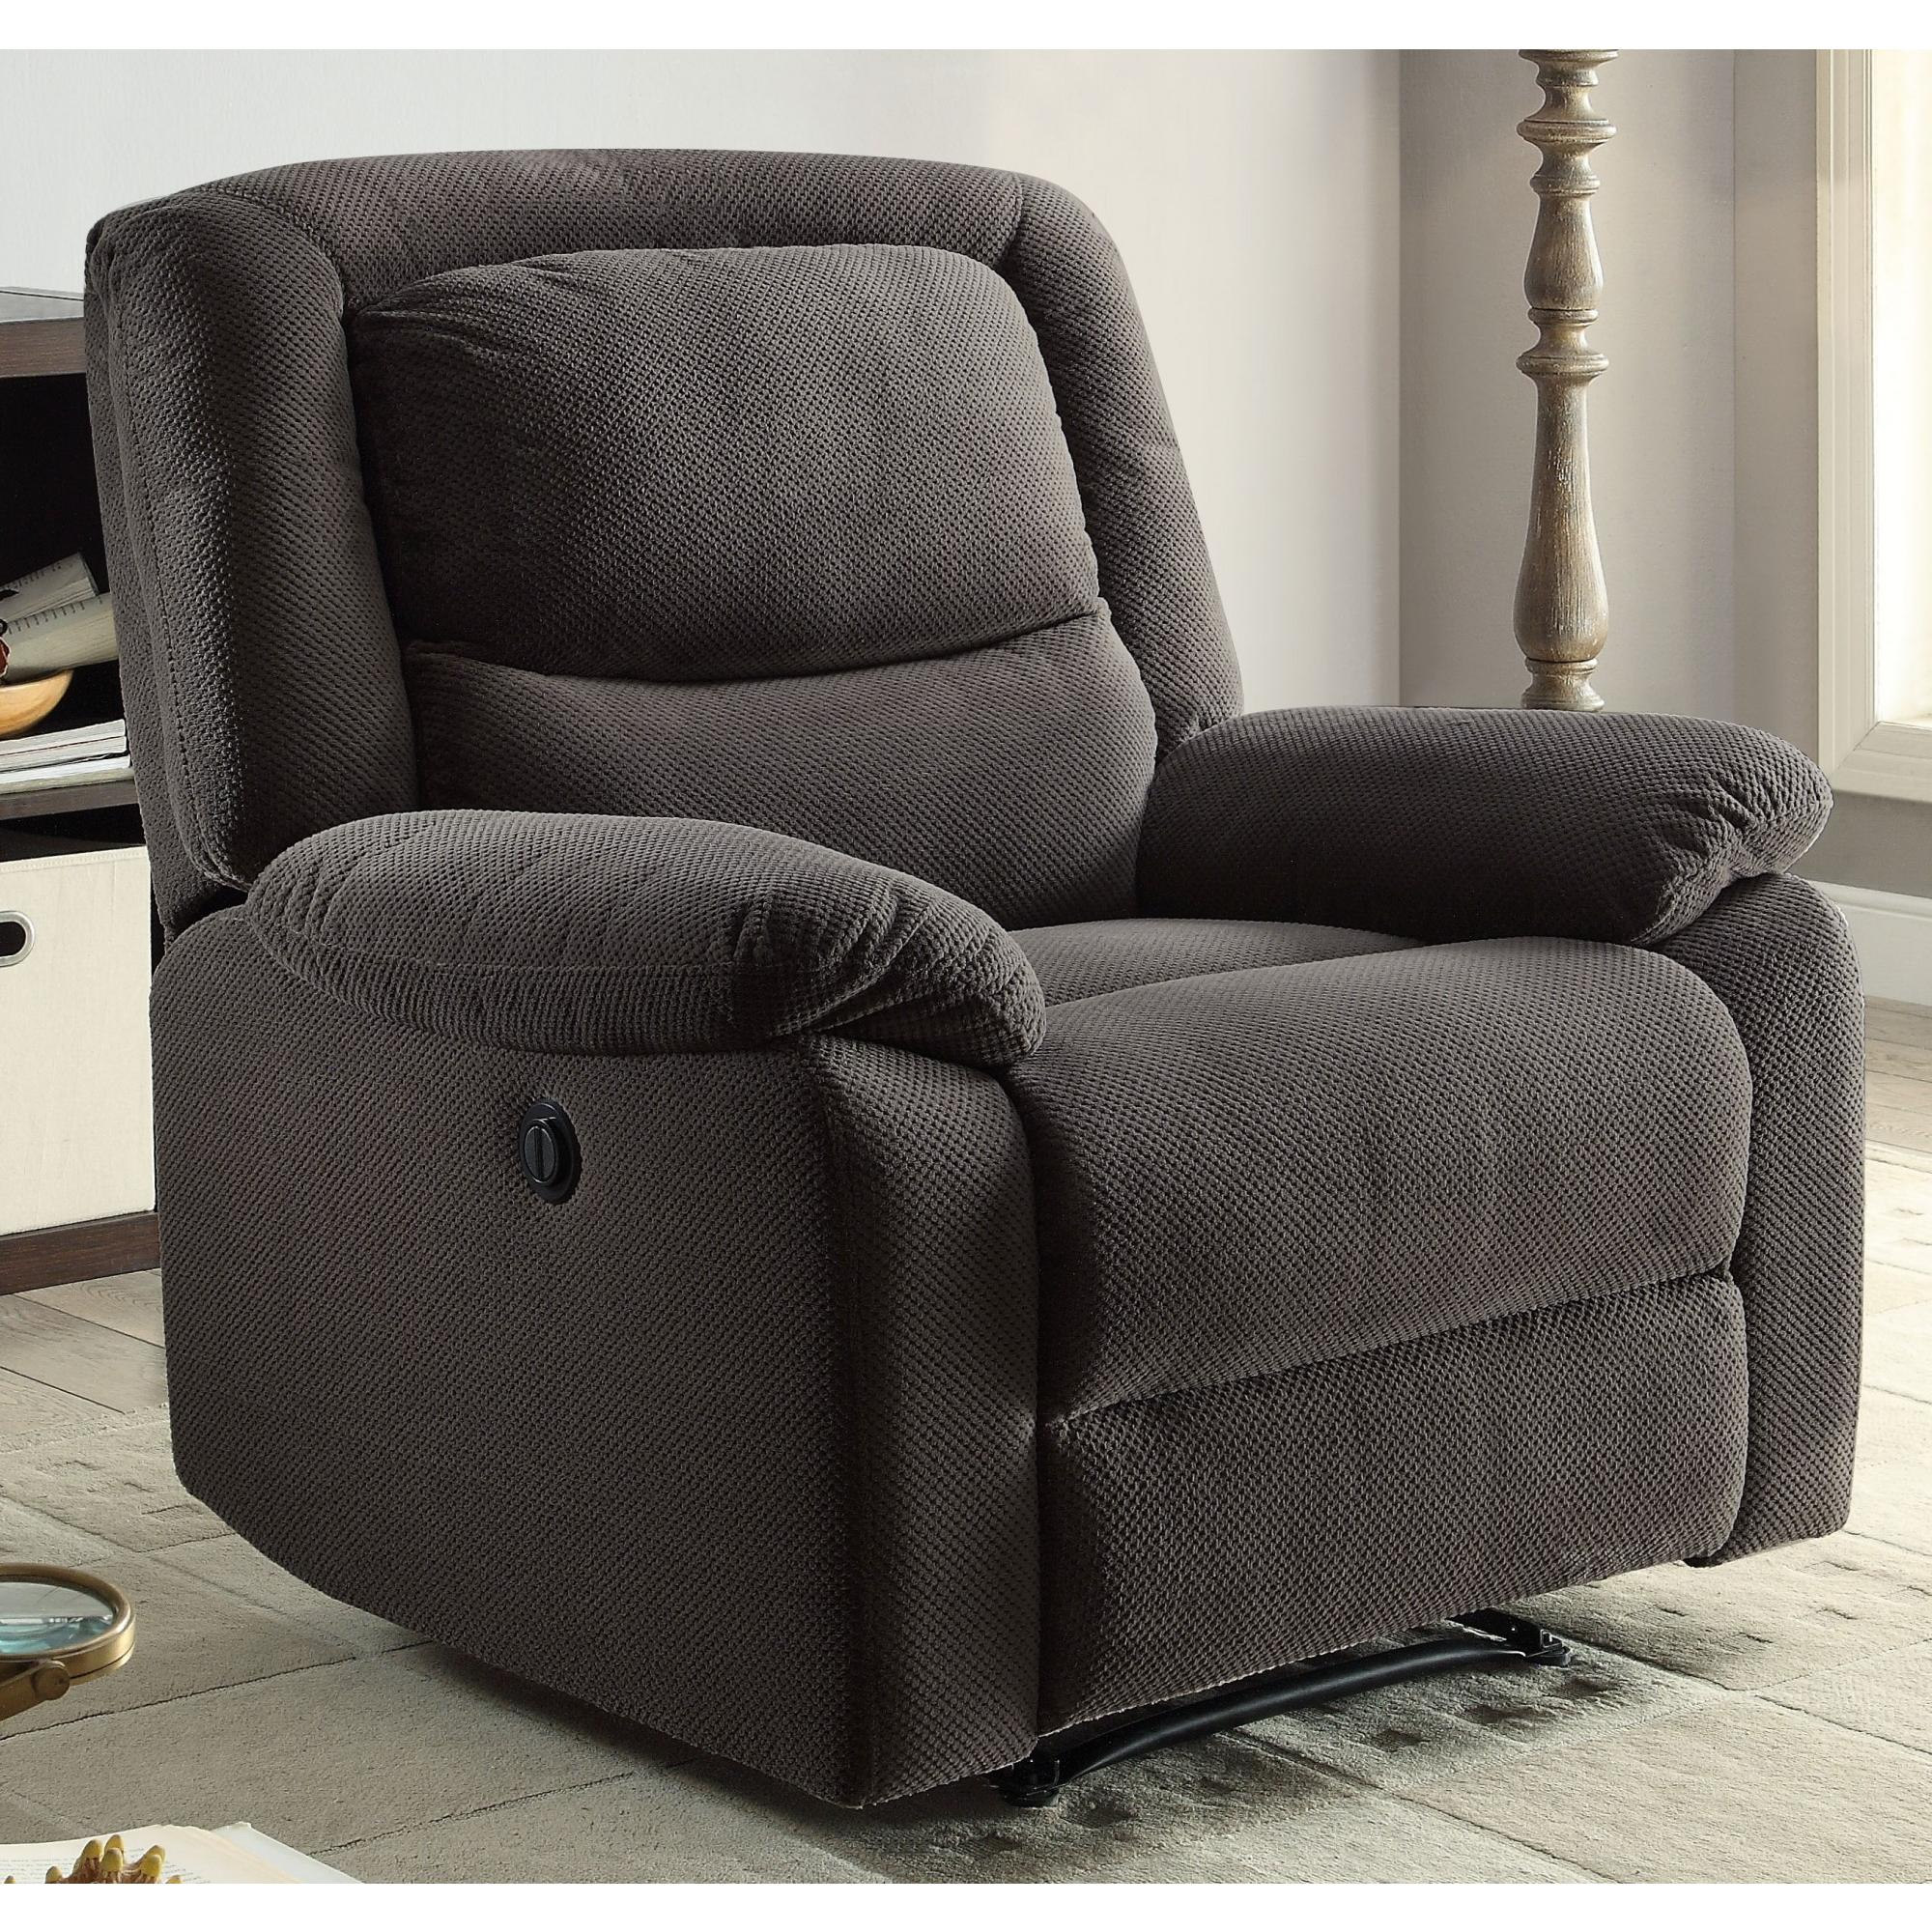 Serta Push-Button Power Recliner with Deep Body Cushions, Ultra